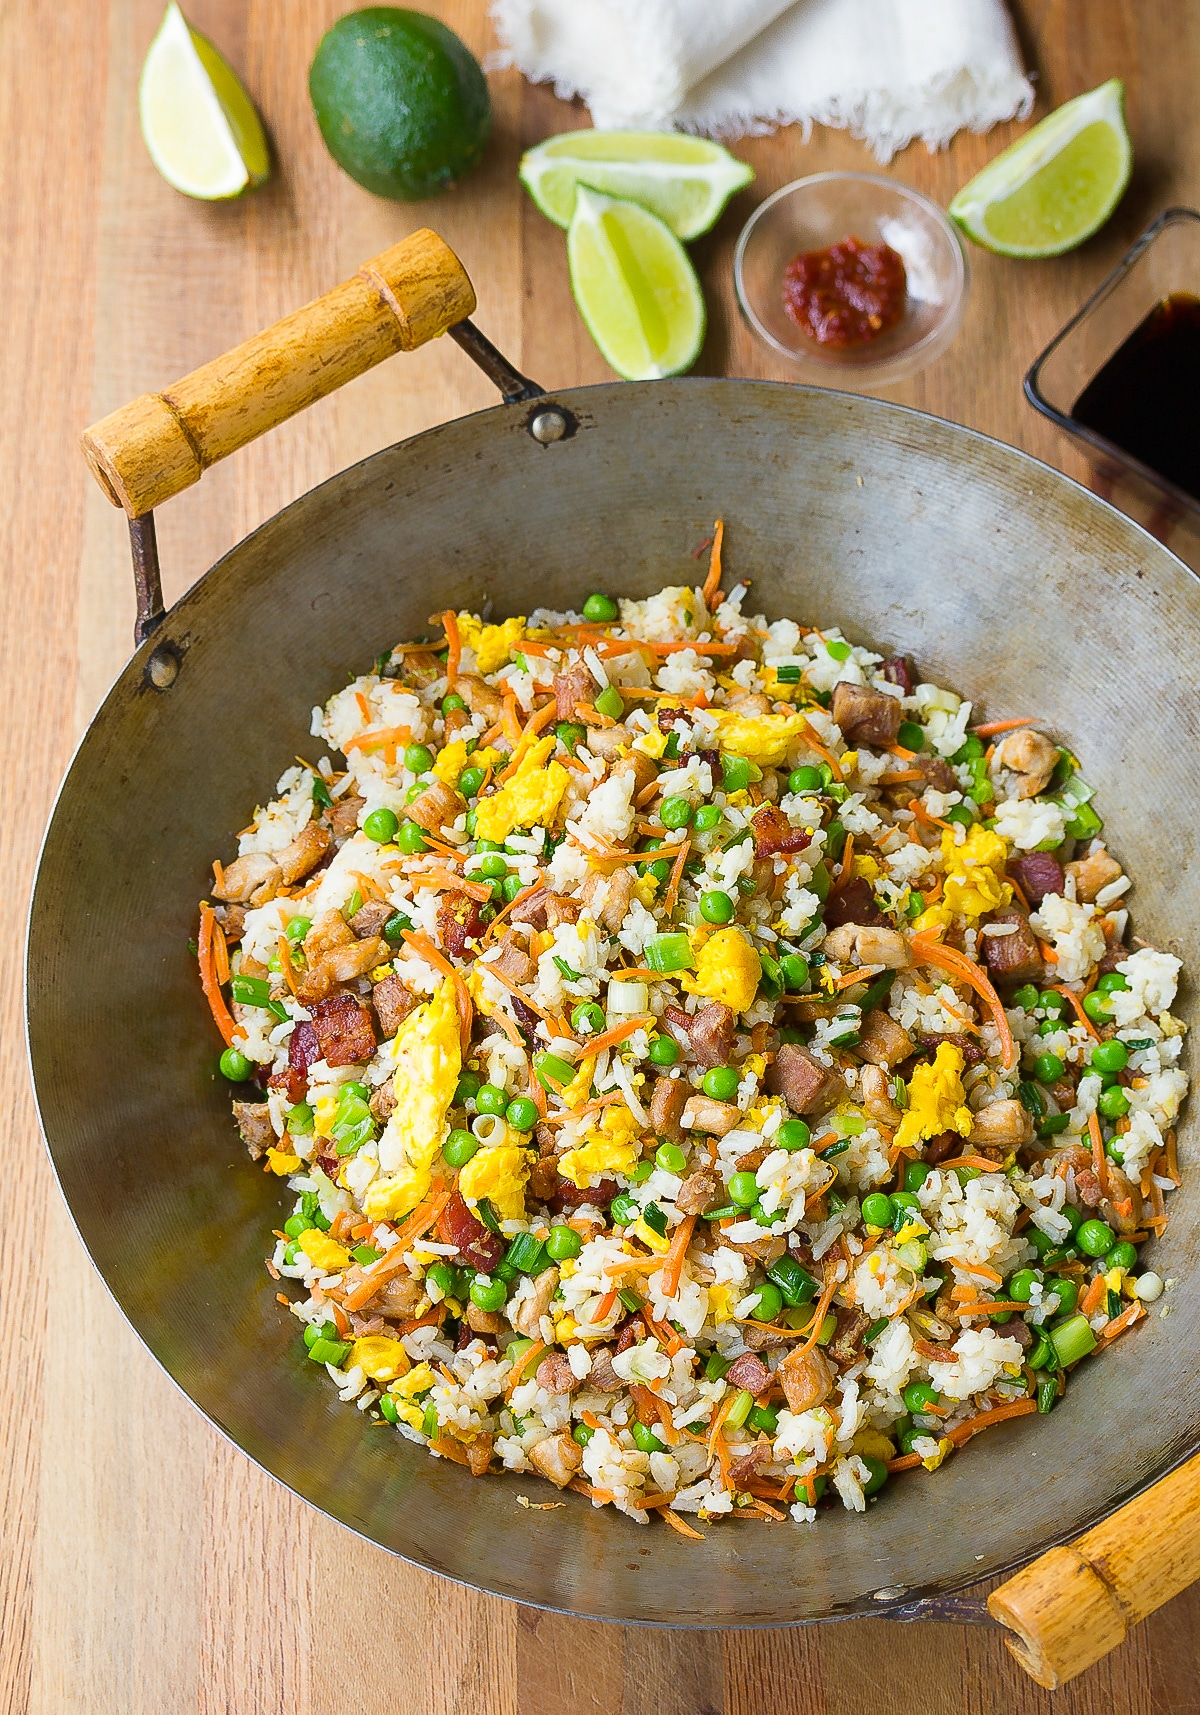 Hawaiian Pork Fried Rice Recipe #ASpicyPerspective #rice #fried #pork #bacon #asian #hawaiian